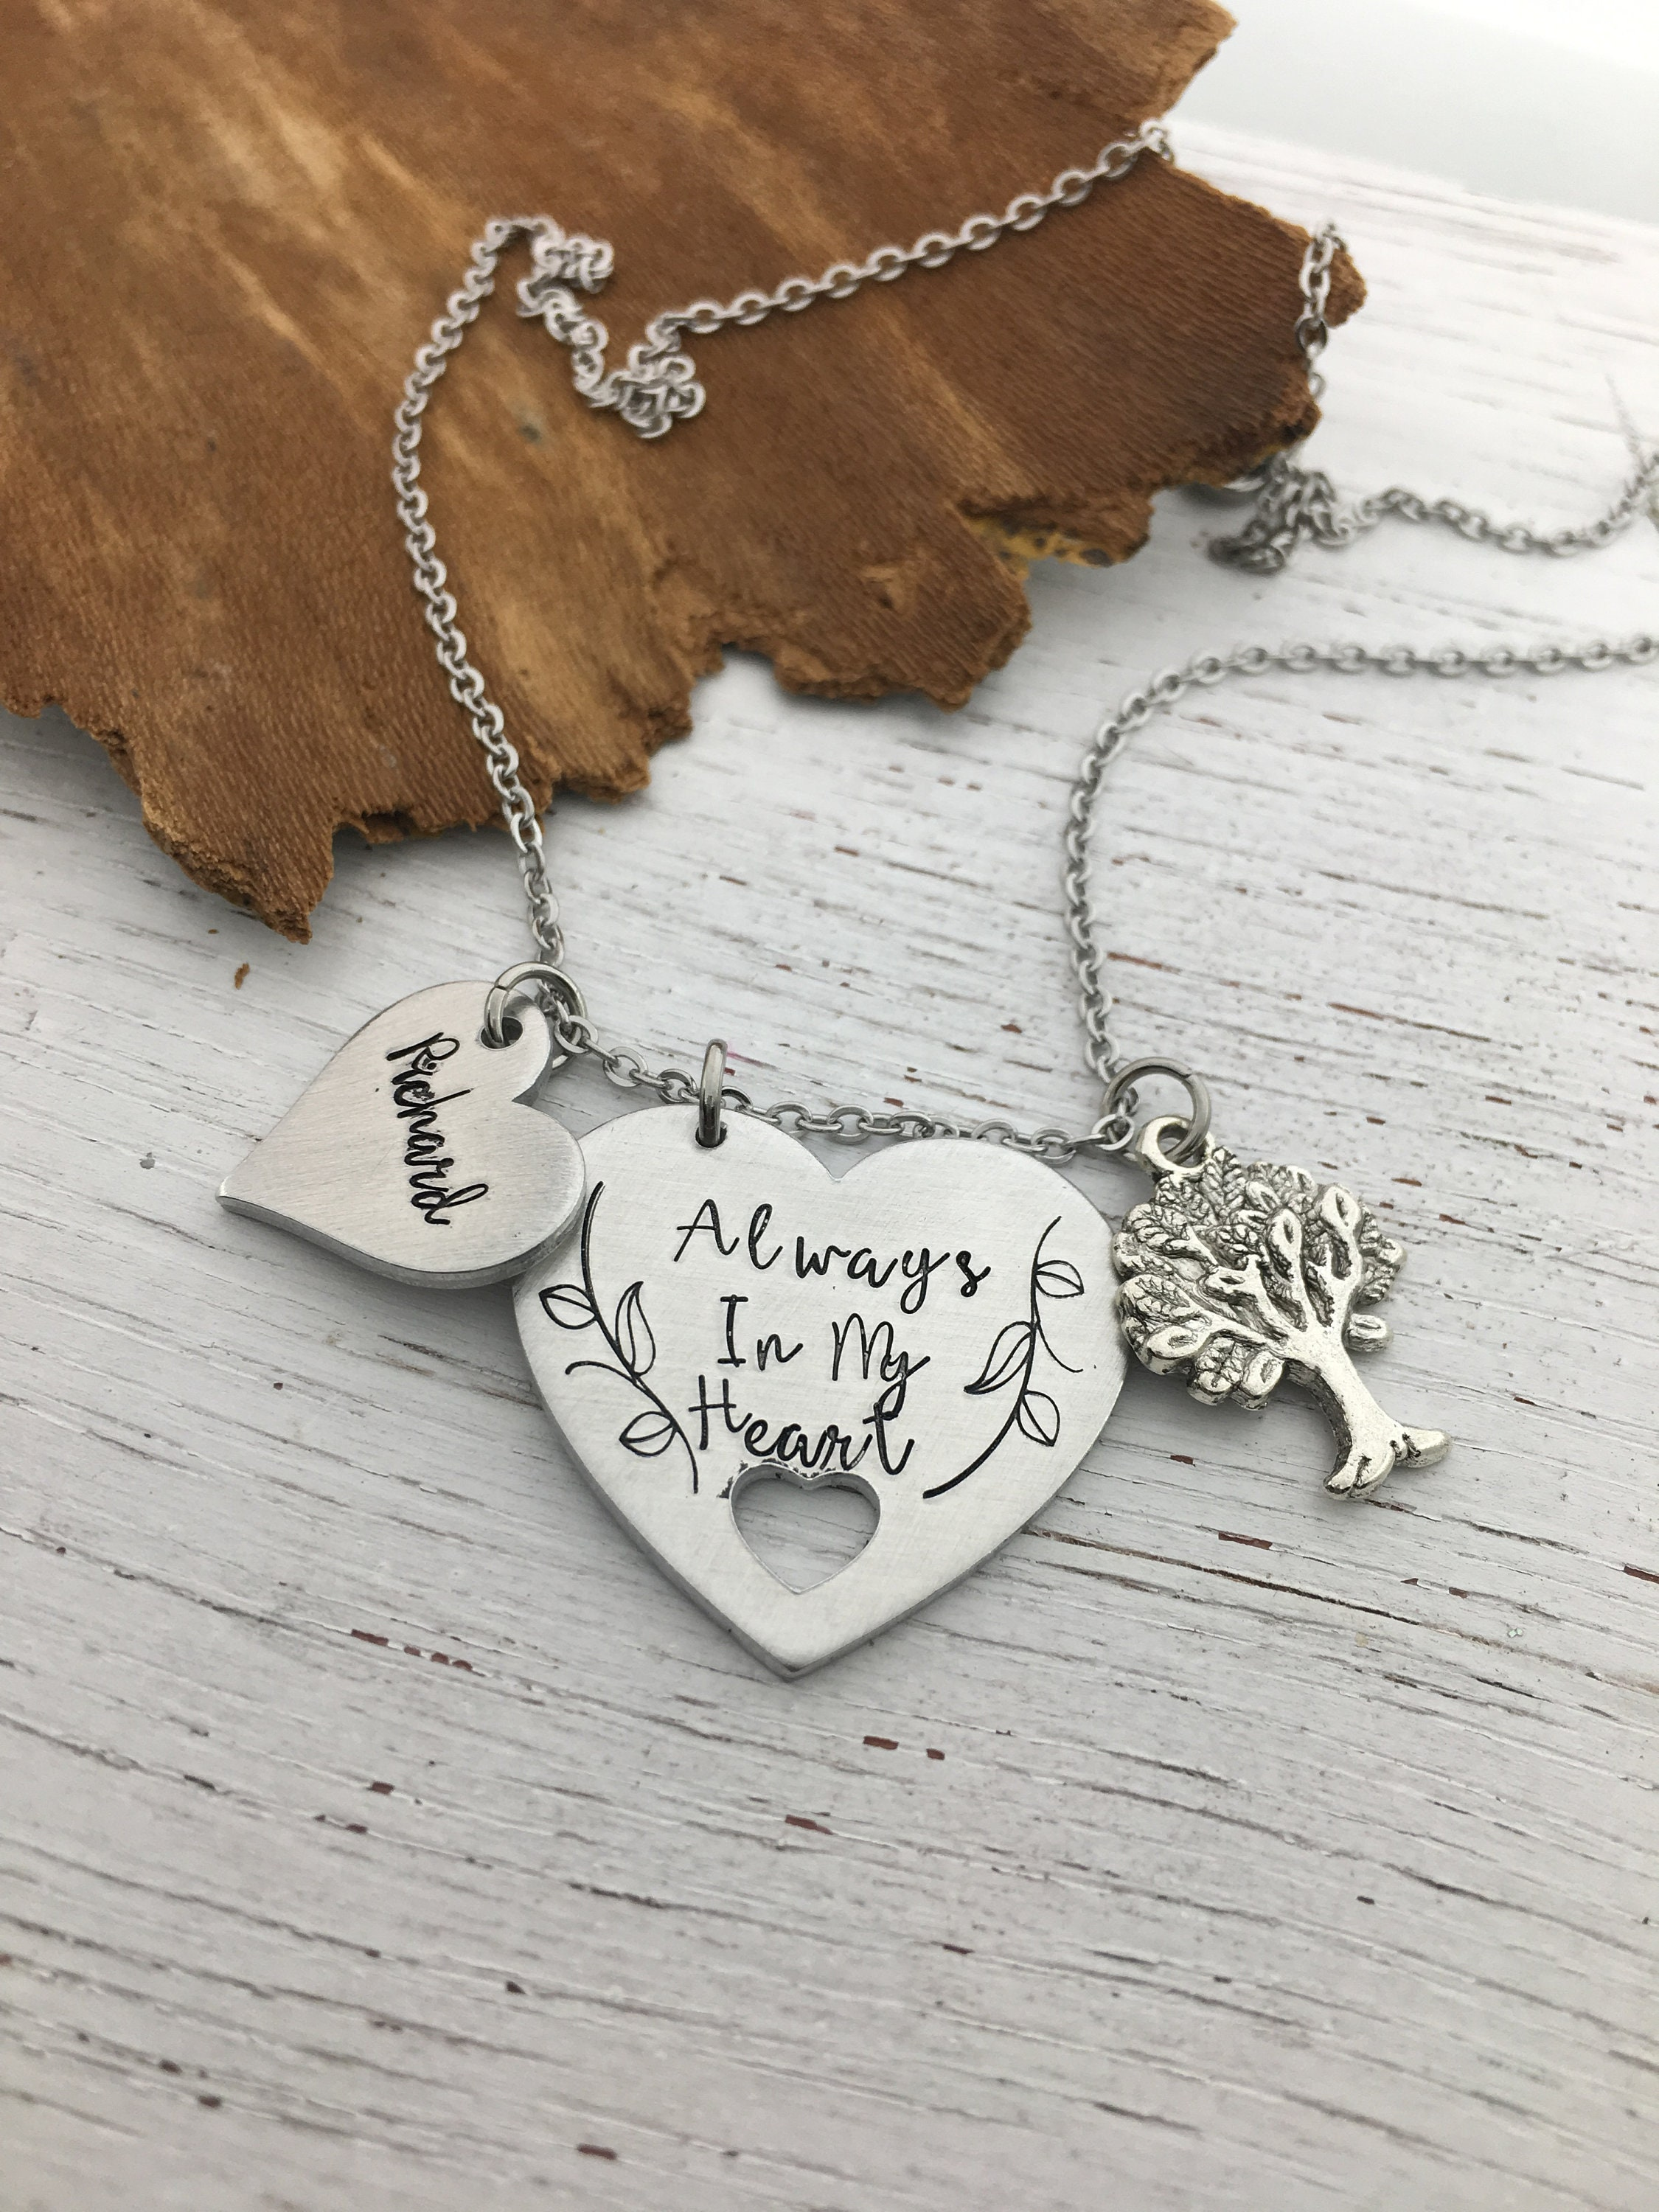 Memorial Necklace Loss of Father Memorial Gift Memorial Jewelry Memory Necklace Memorial Keepsake Loss of Husband Loss of Brother